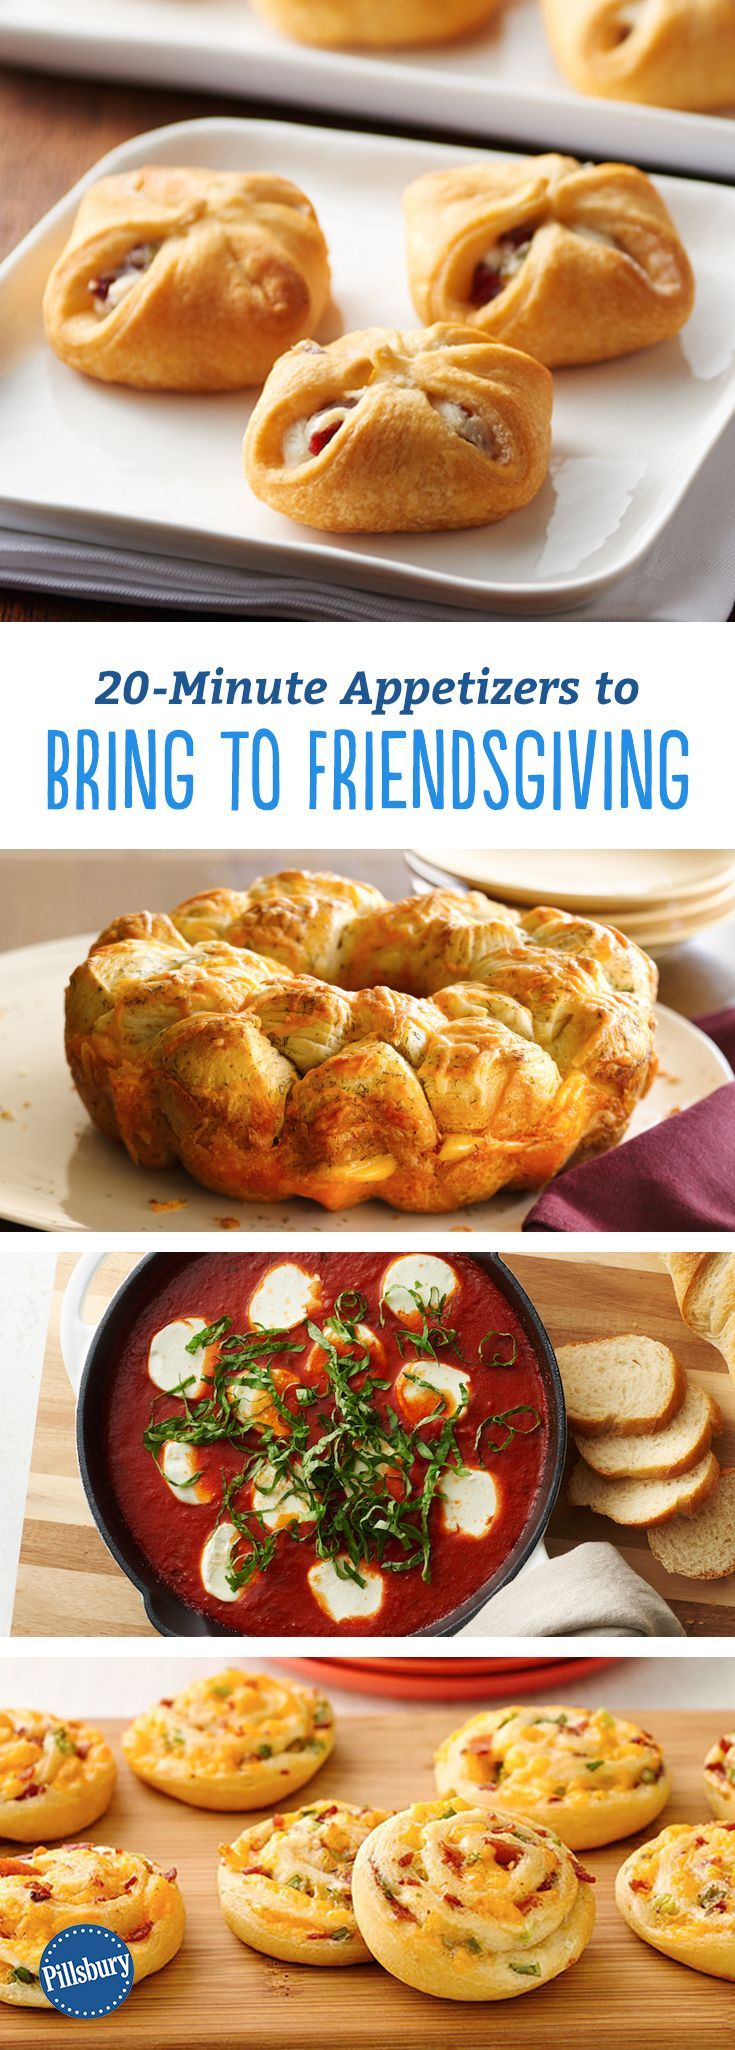 20-Minute Appetizers To Bring To Friendsgiving